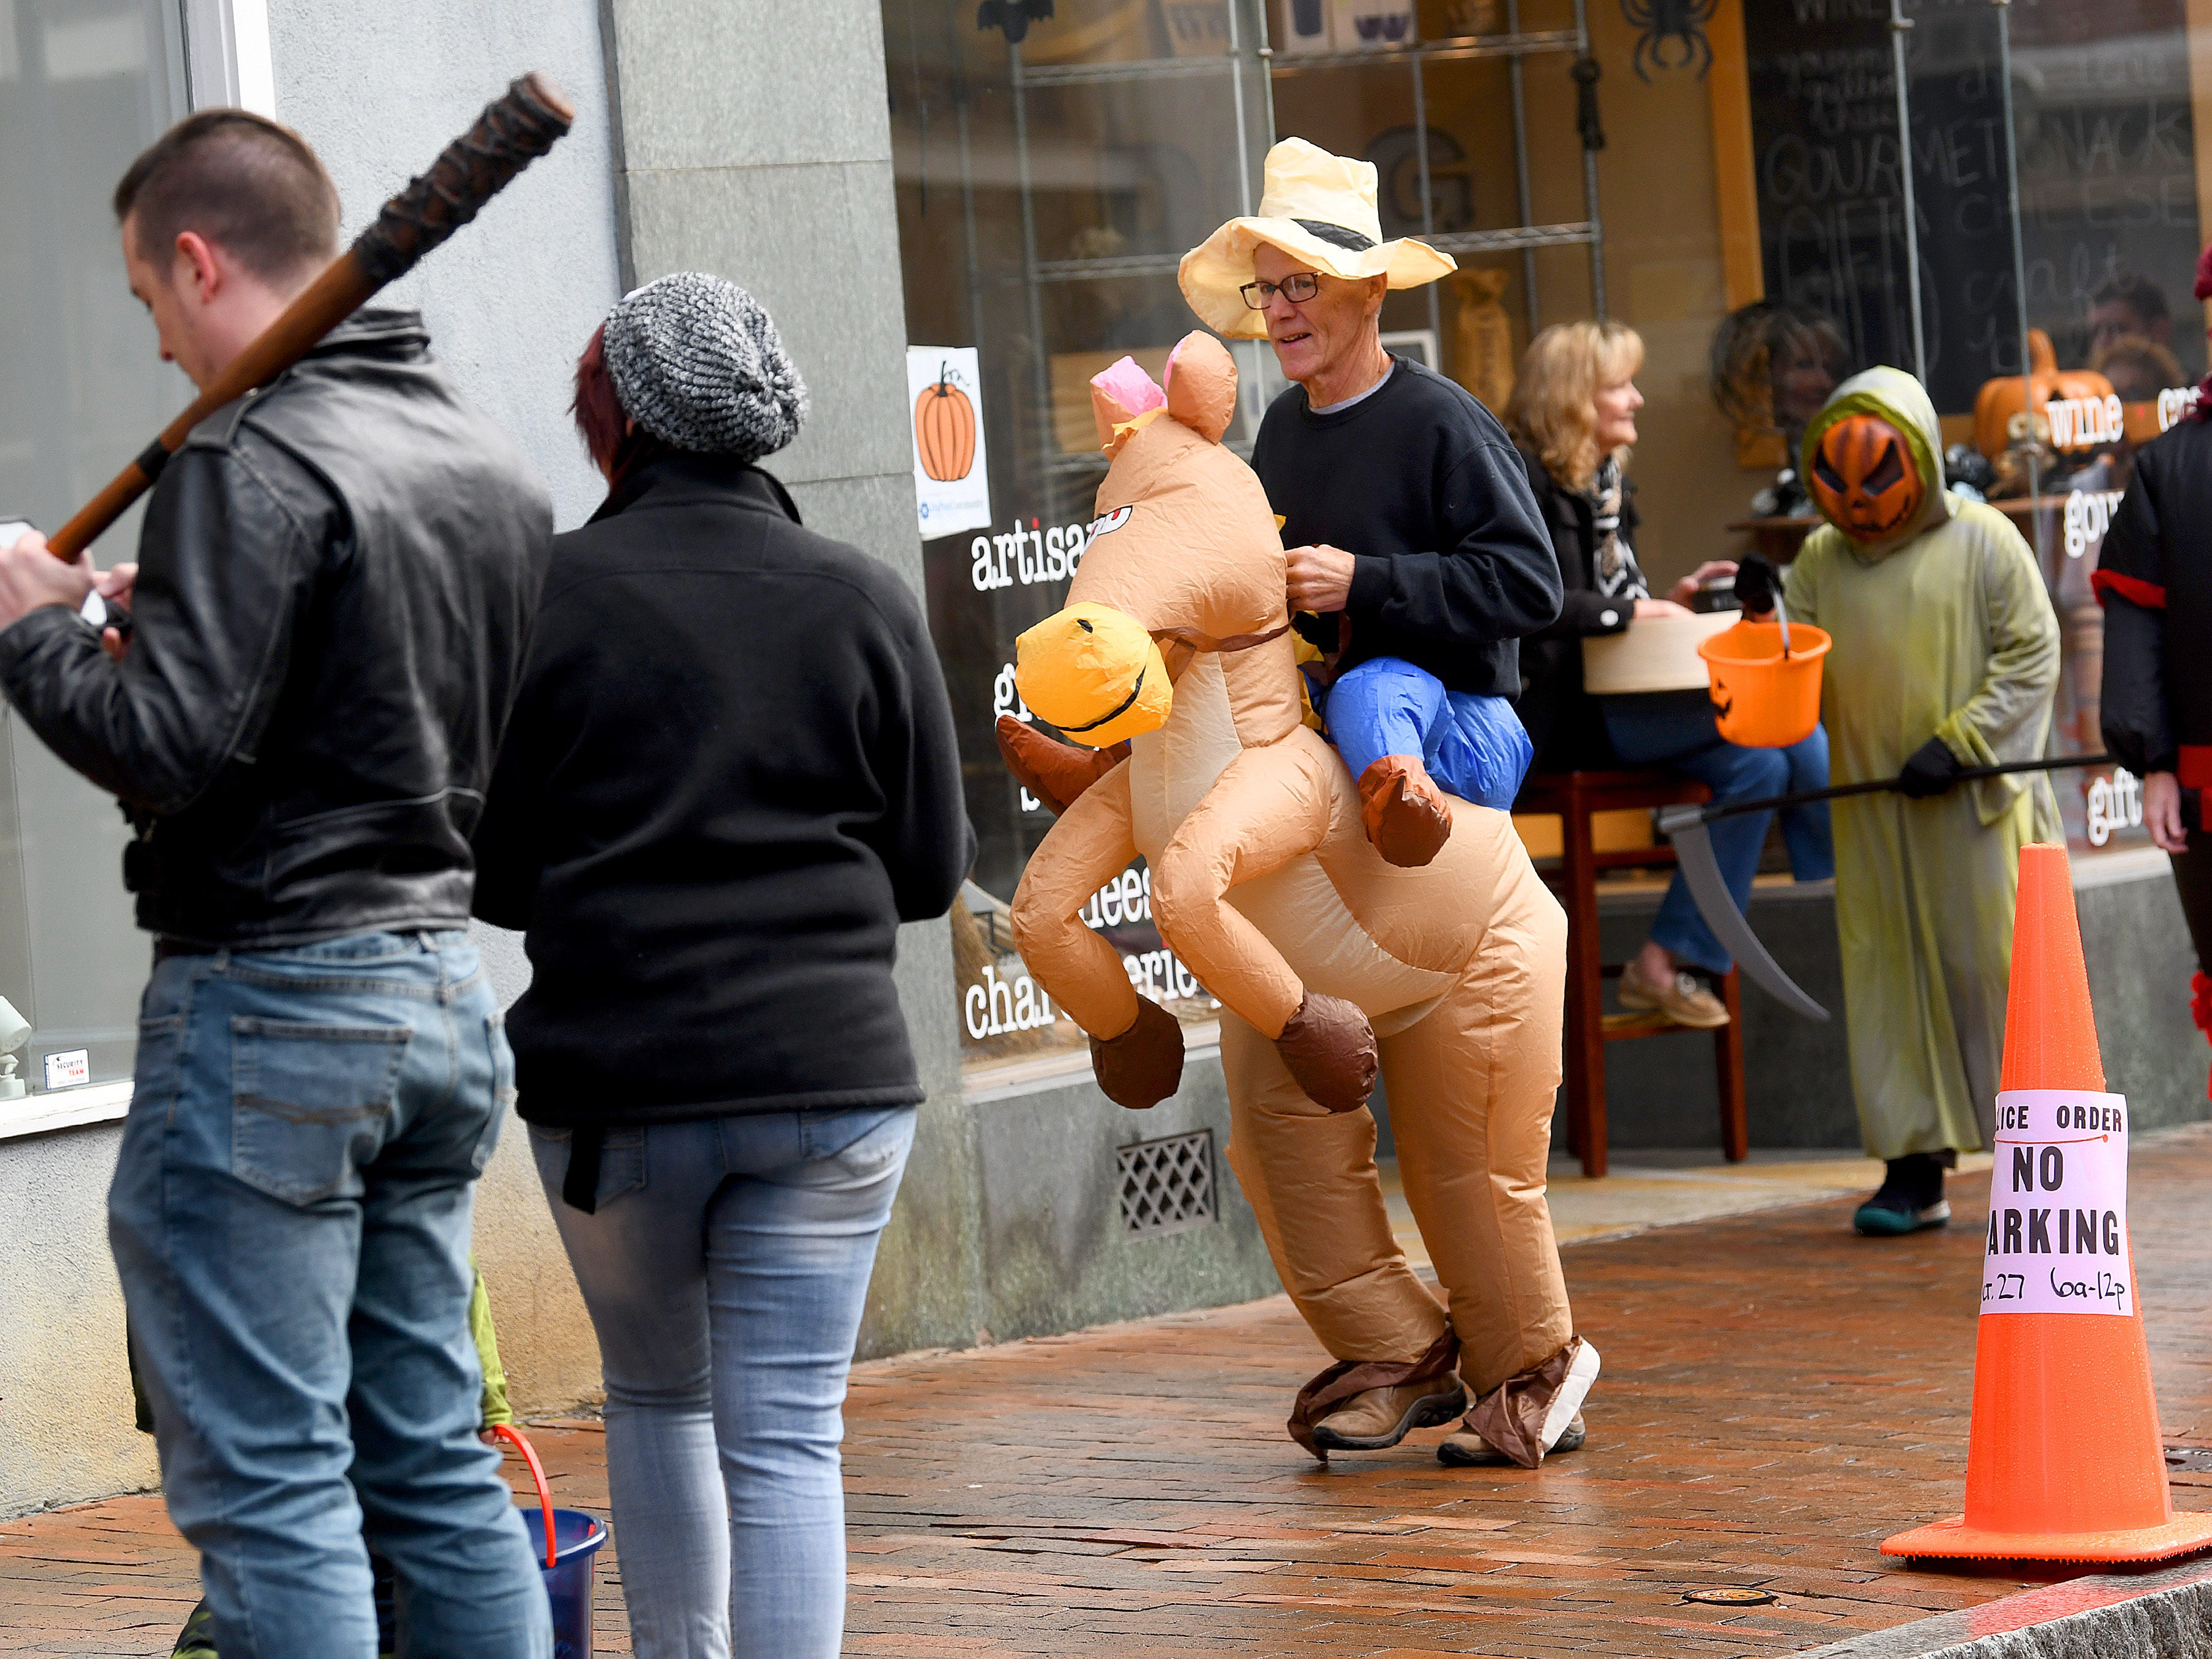 A man gallops along the sidewalk with his inflatable horse during the annual downtown trick-or-treating event in Staunton on Saturday, Oct. 27, 2018.